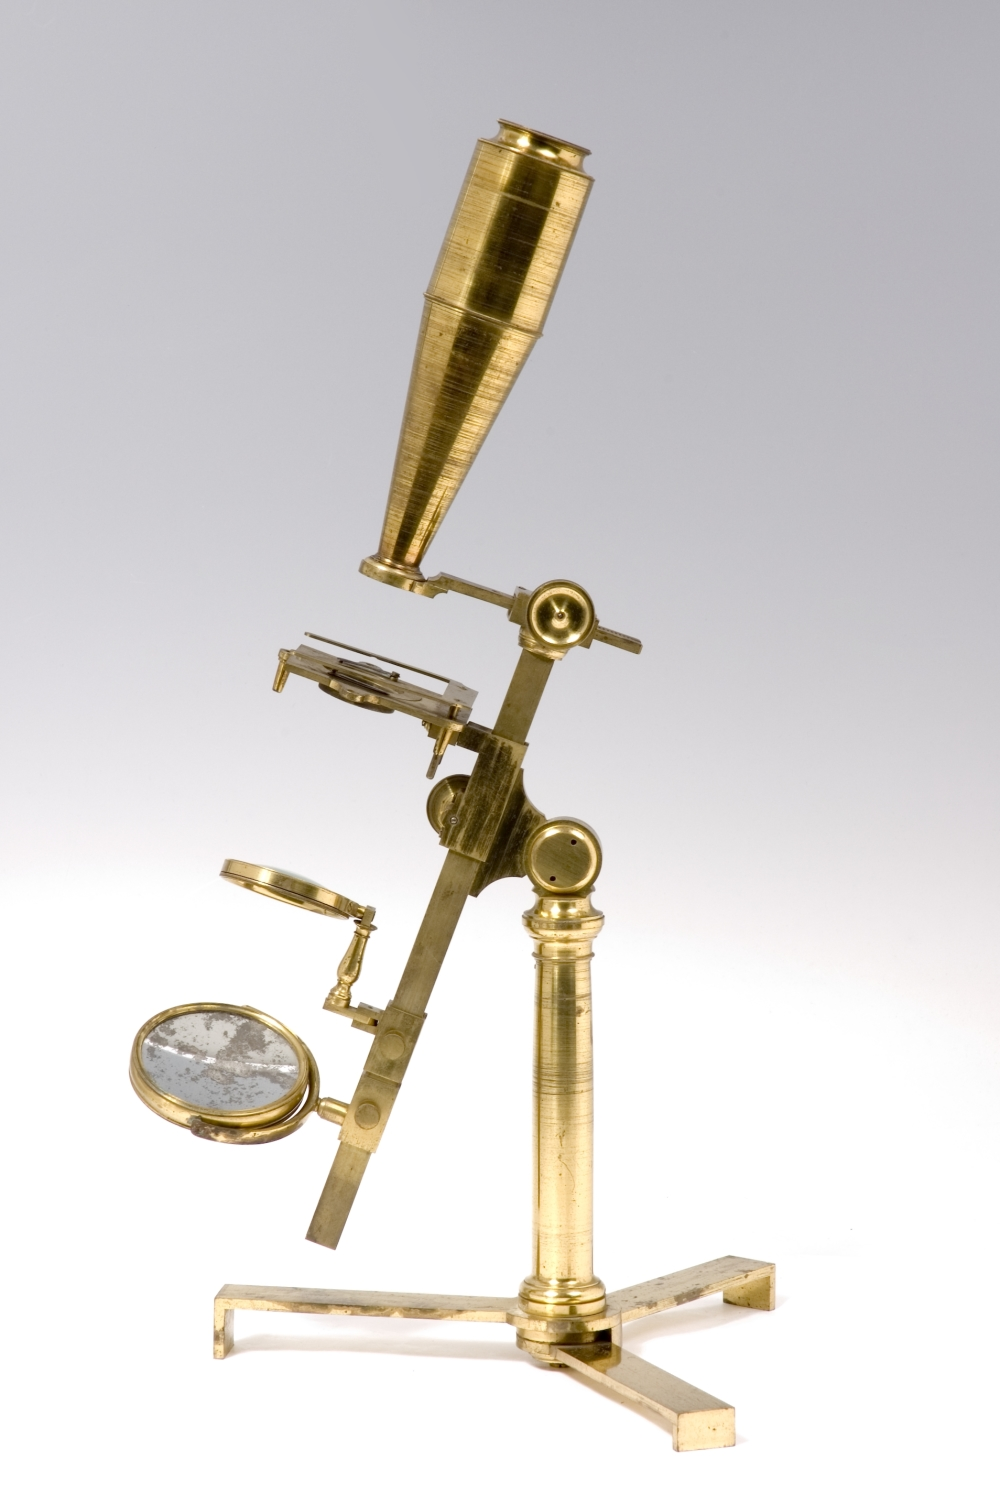 preview image for Compound and Simple Microscope in Case with Accessories, by Banks, London, c. 1811-1820